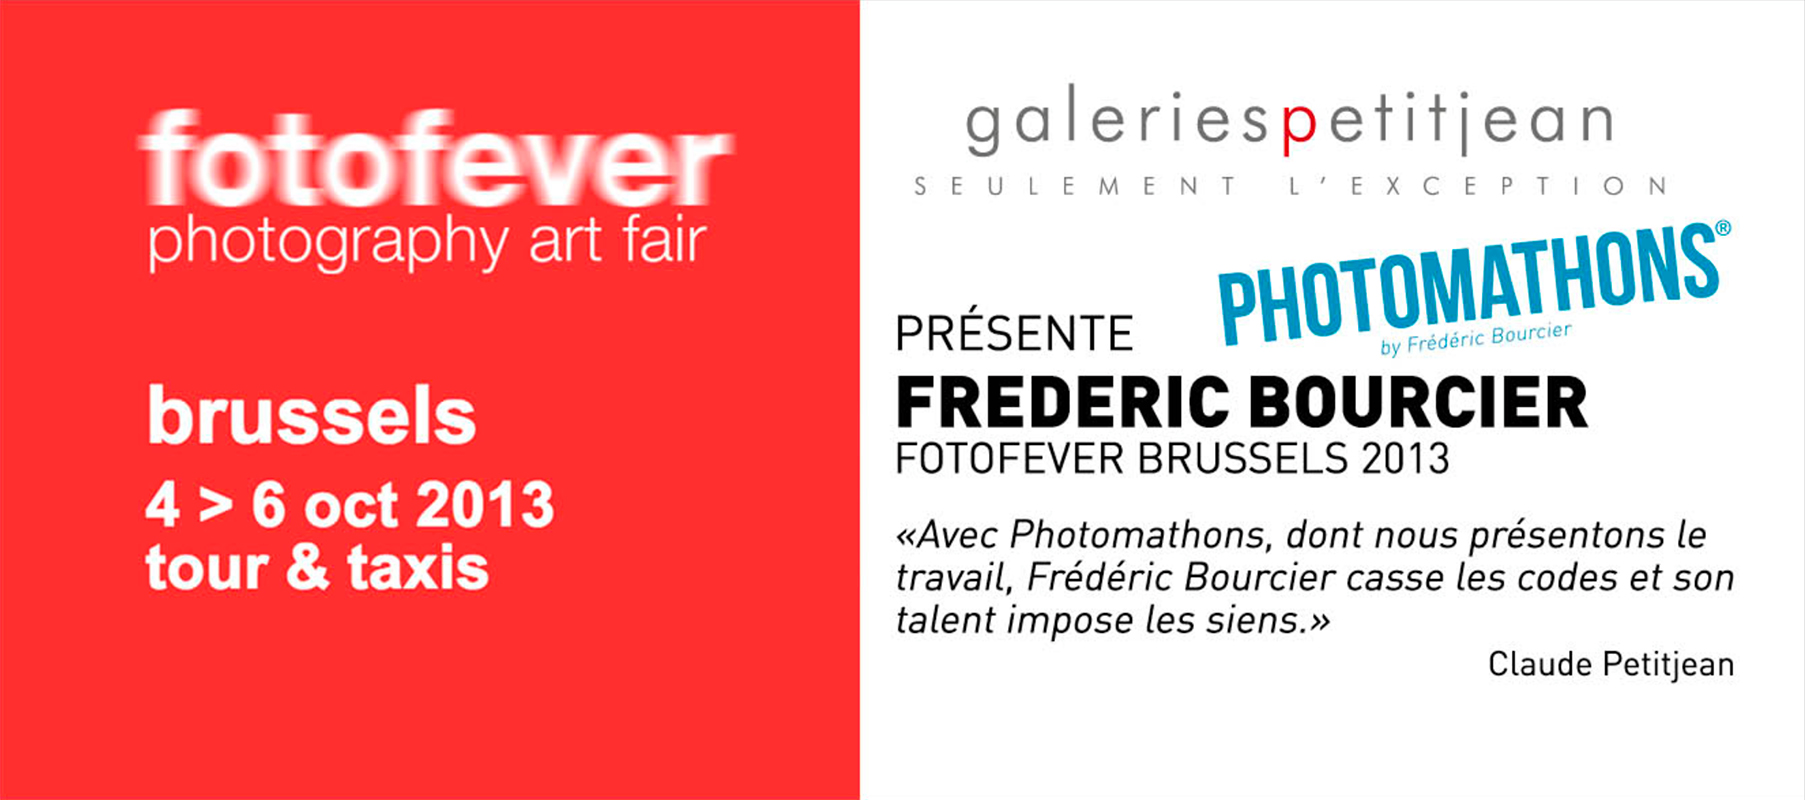 frederic bourcier galerie claude petitjean exposition photomathons fotofever 2013 brussels